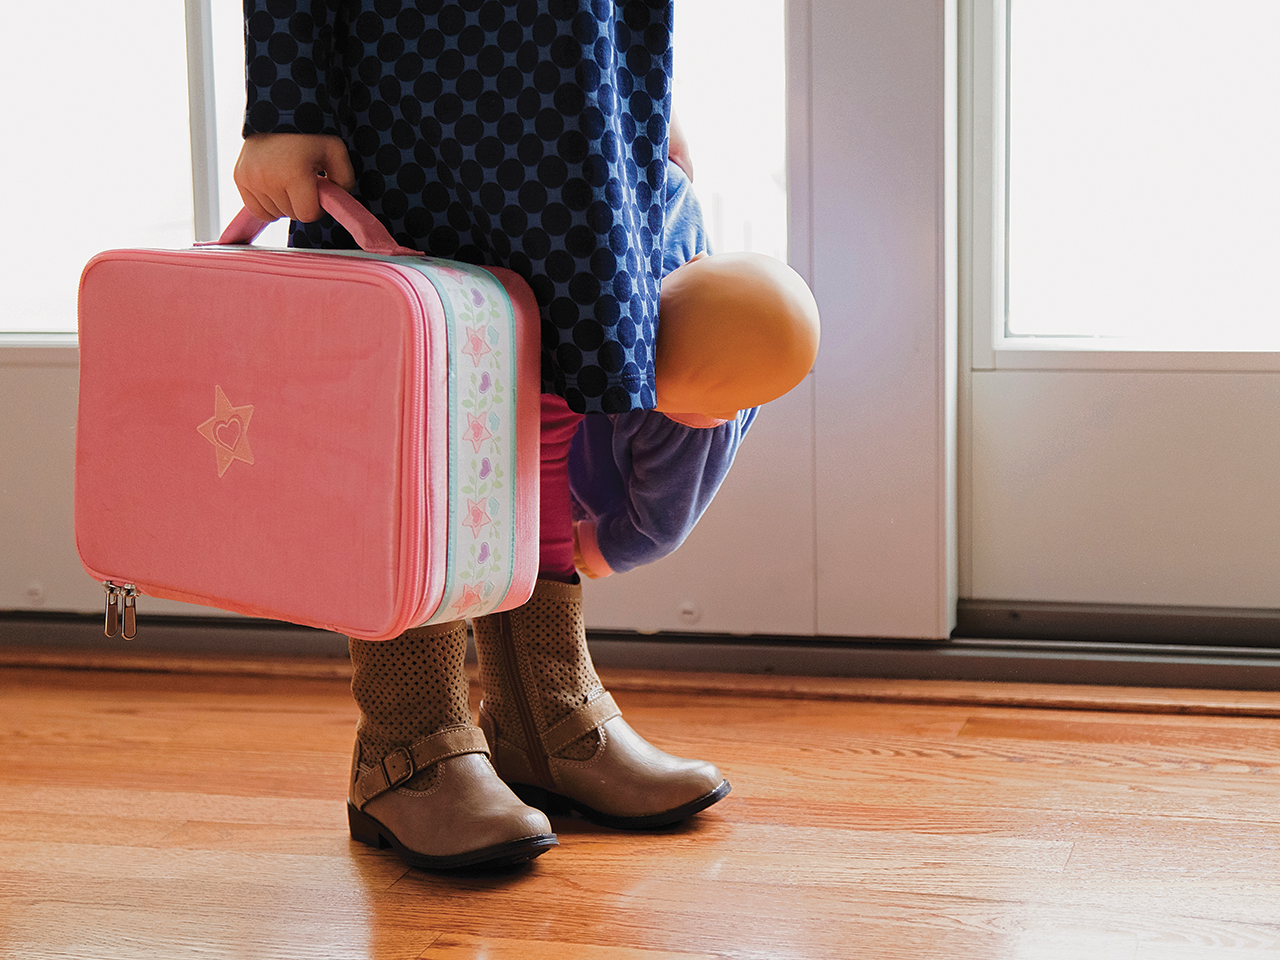 Little girl with suitcase running away from home